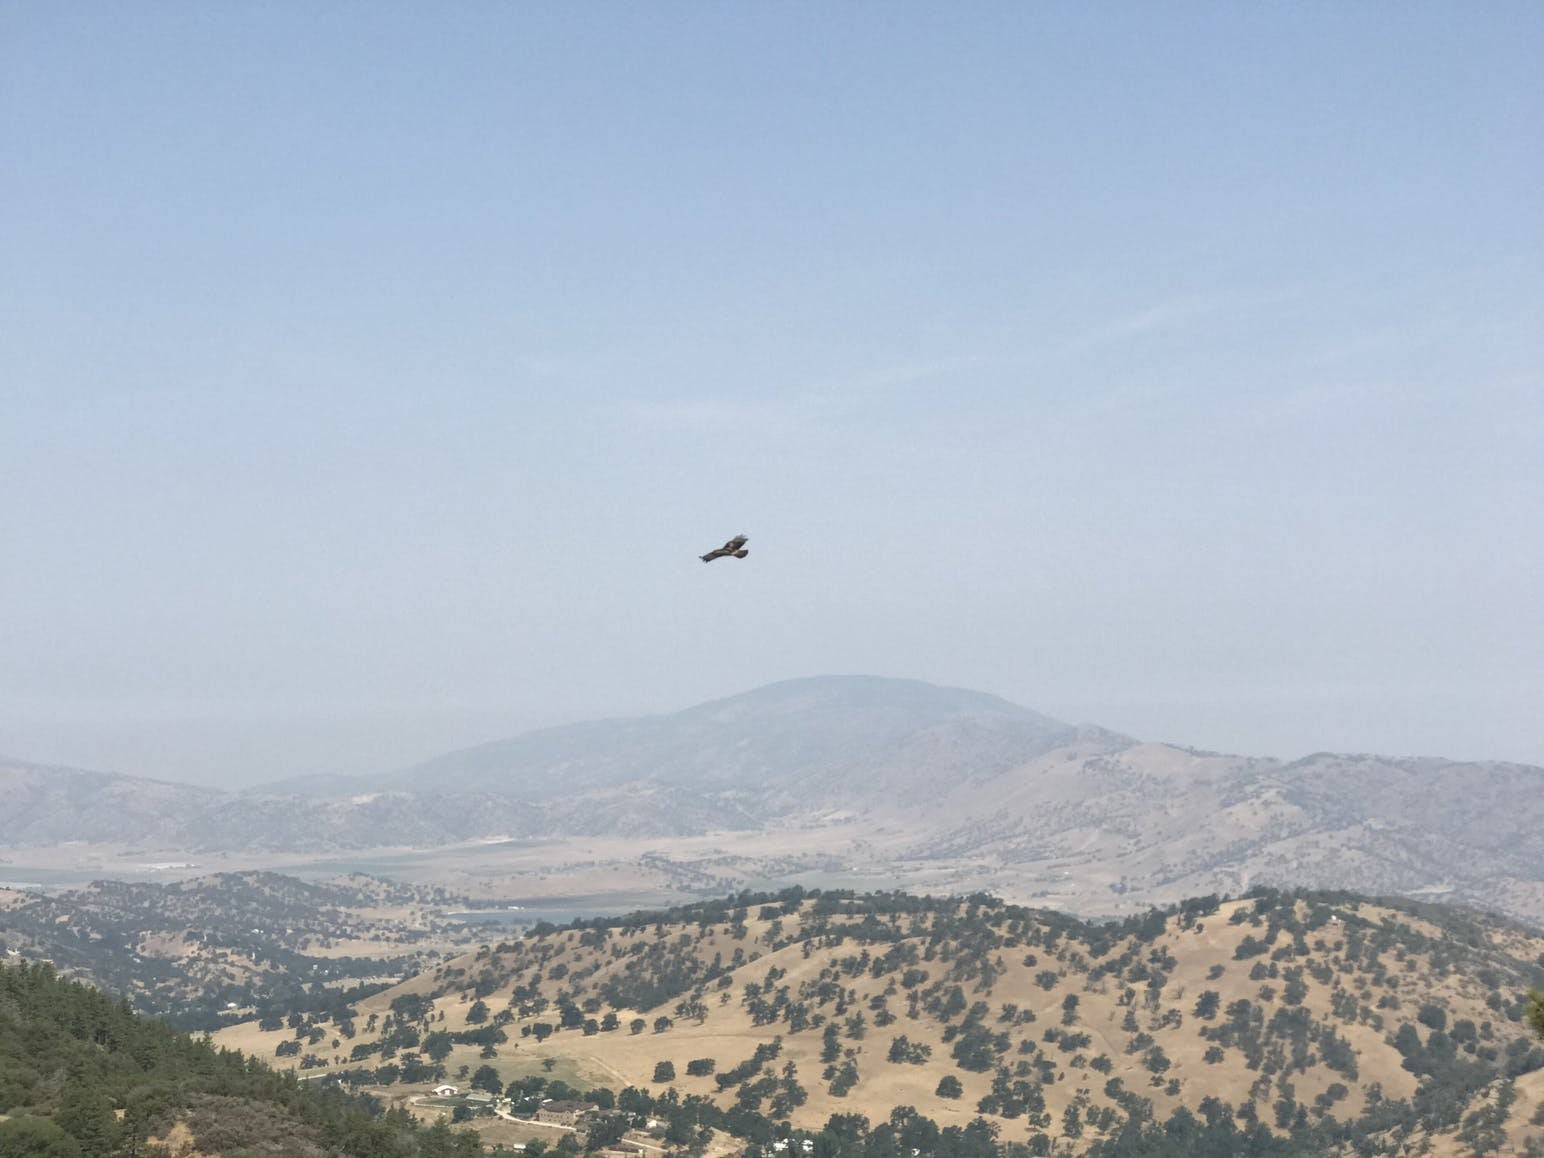 Bird flying over the mountains in California.